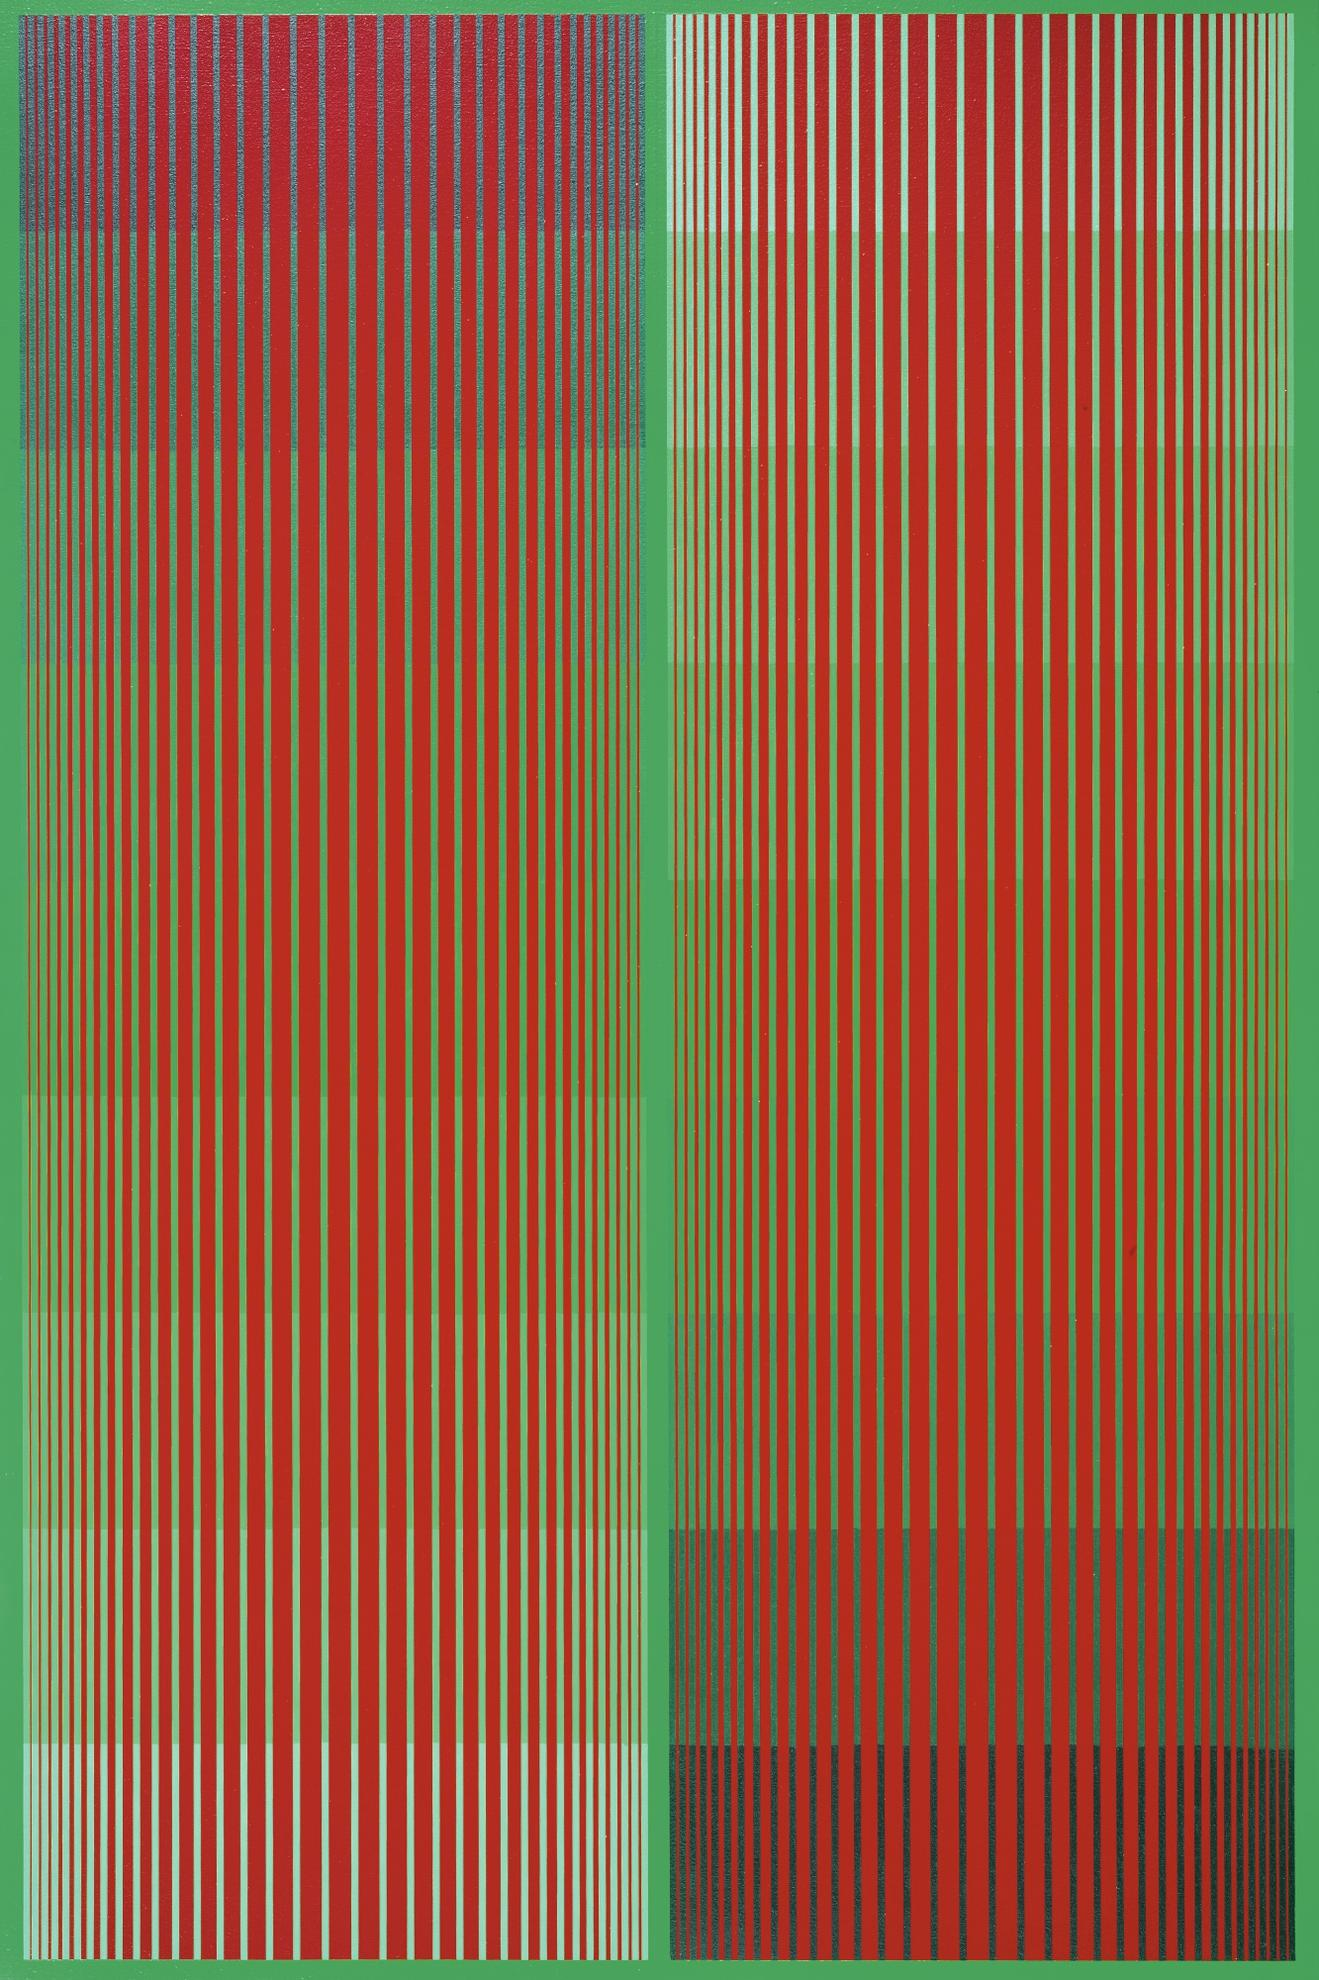 Richard Anuszkiewicz-Greening Red Duo (A.K.A. Dual Reds II)-1984